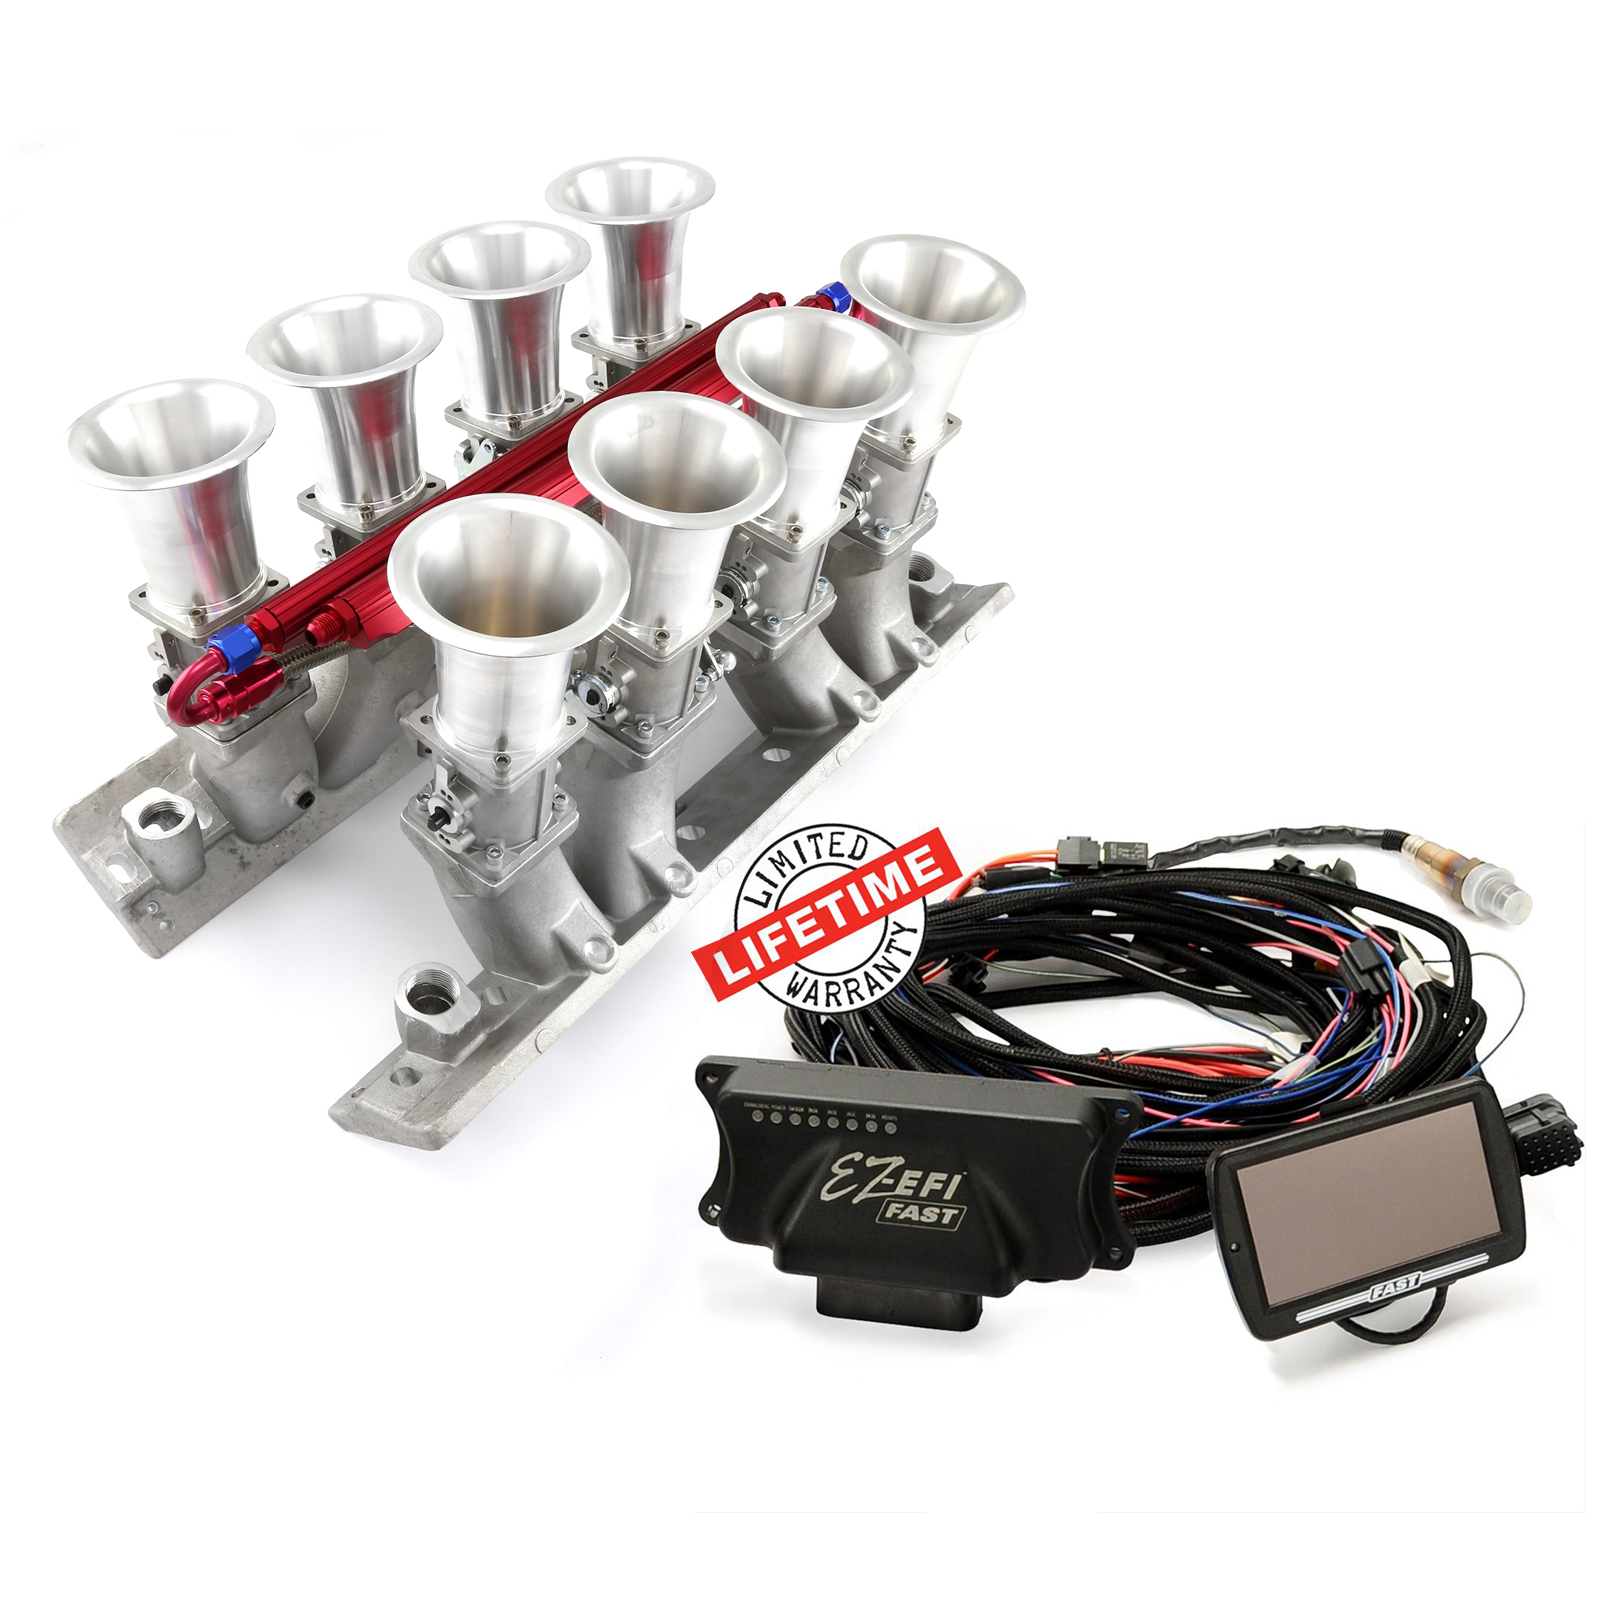 FAST, PCE® PCE148.1076 Chevy BBC 454 EFI Manifold & FAST EZ-EFI 2.0 Self-Tuning Fuel Injection System